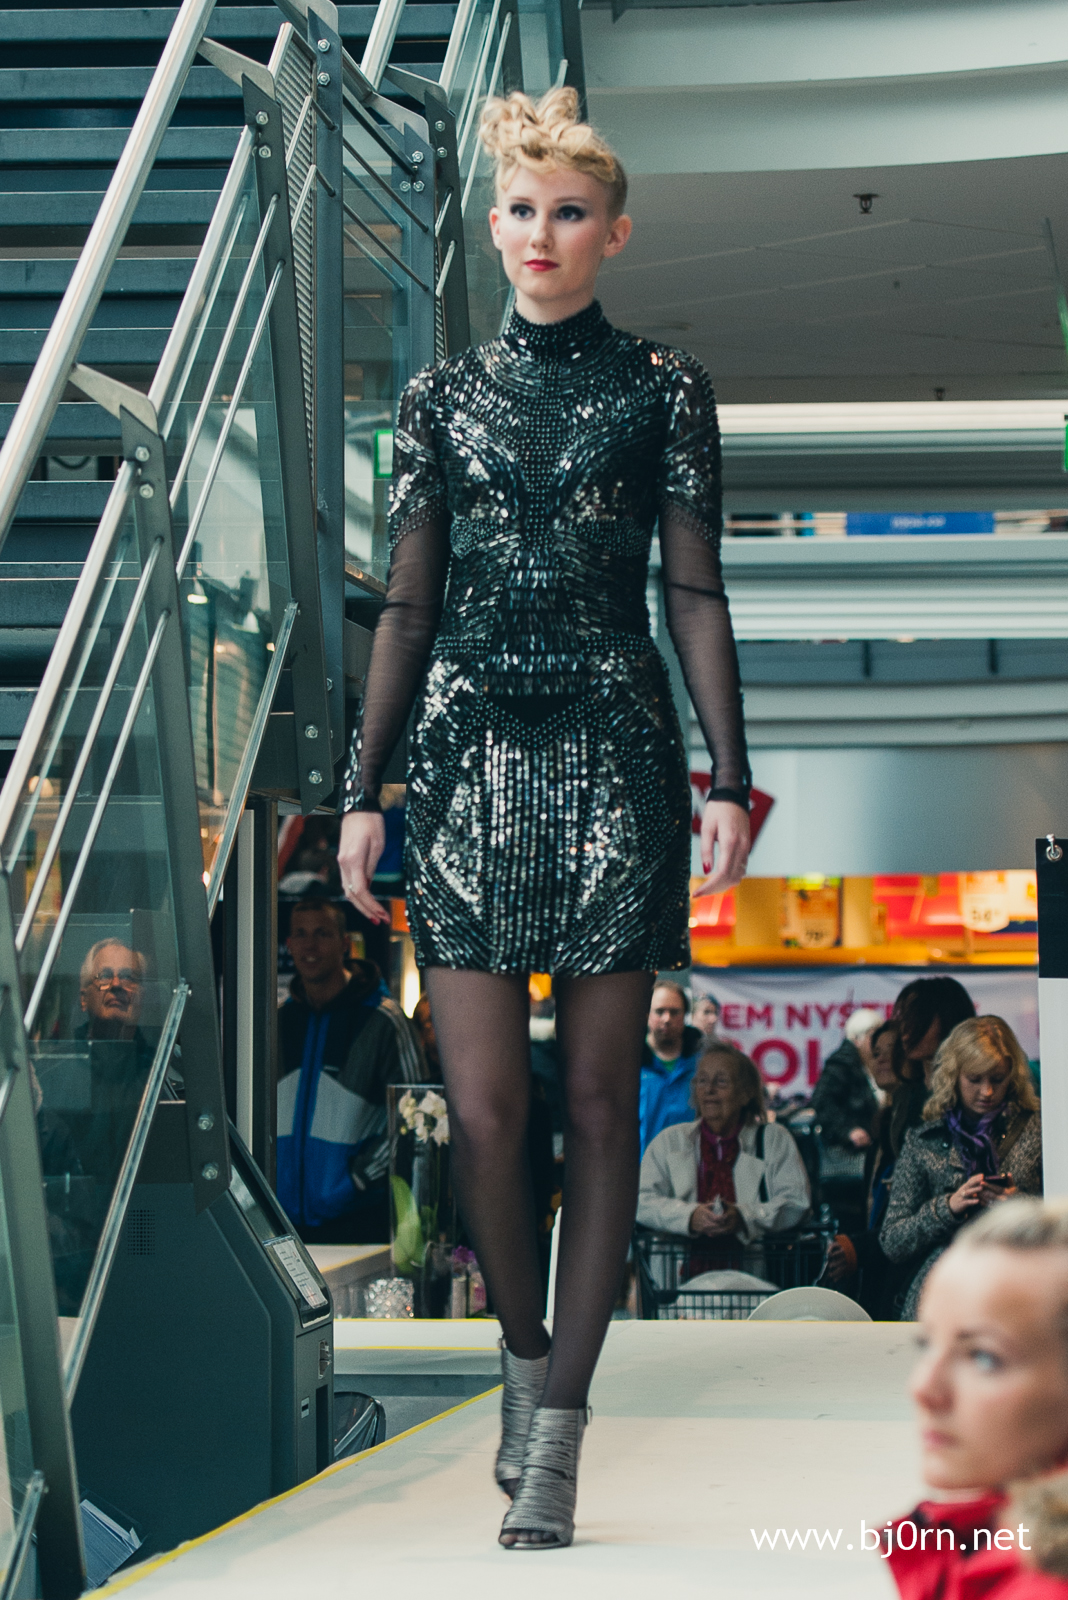 Fashion show at Solsiden Senter - October 2012